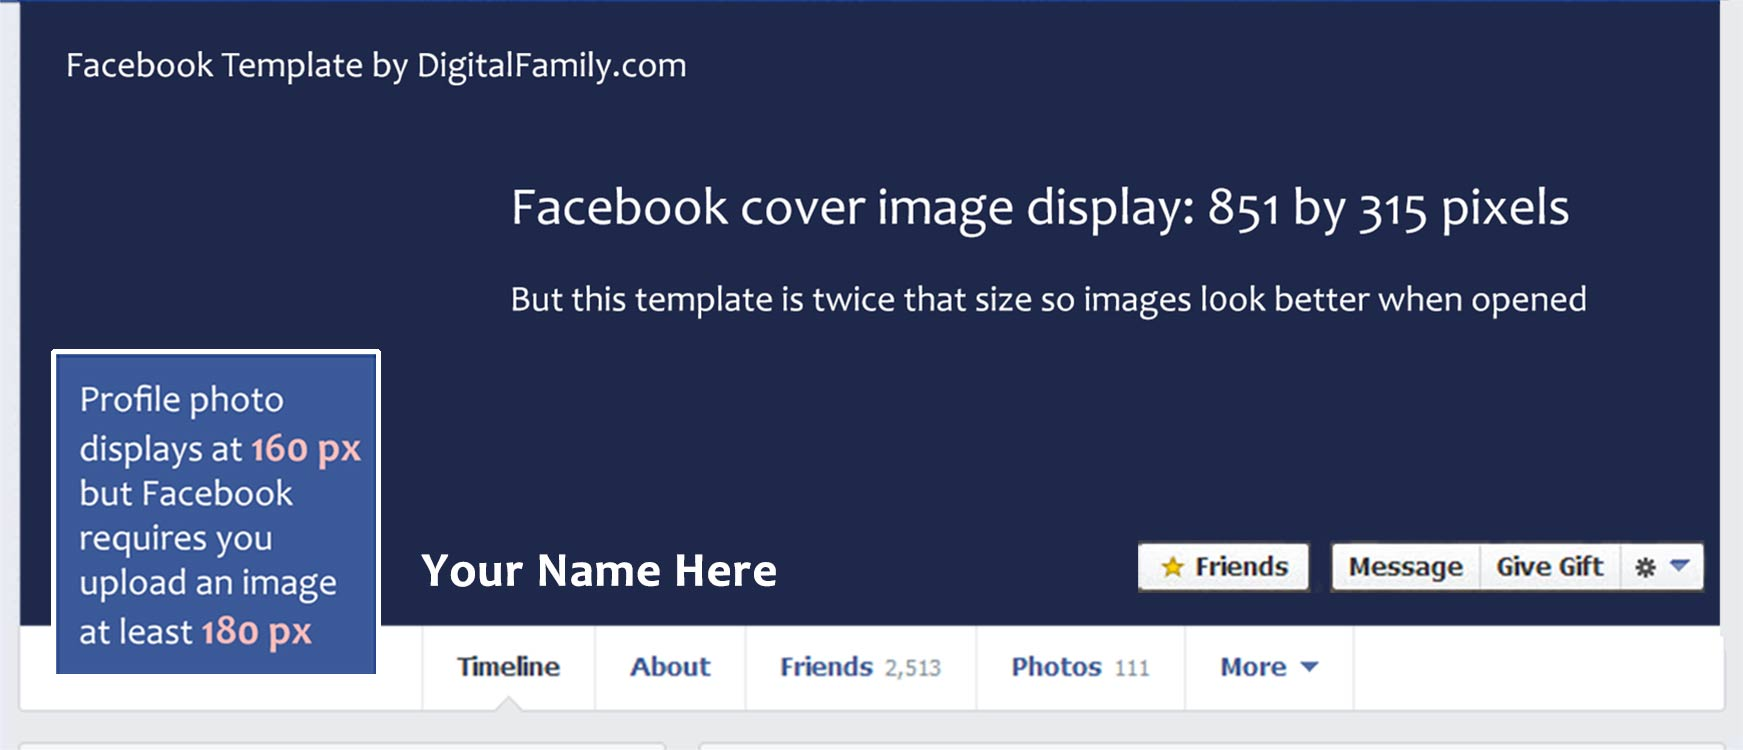 My free template is twice the size Facebook recommends -